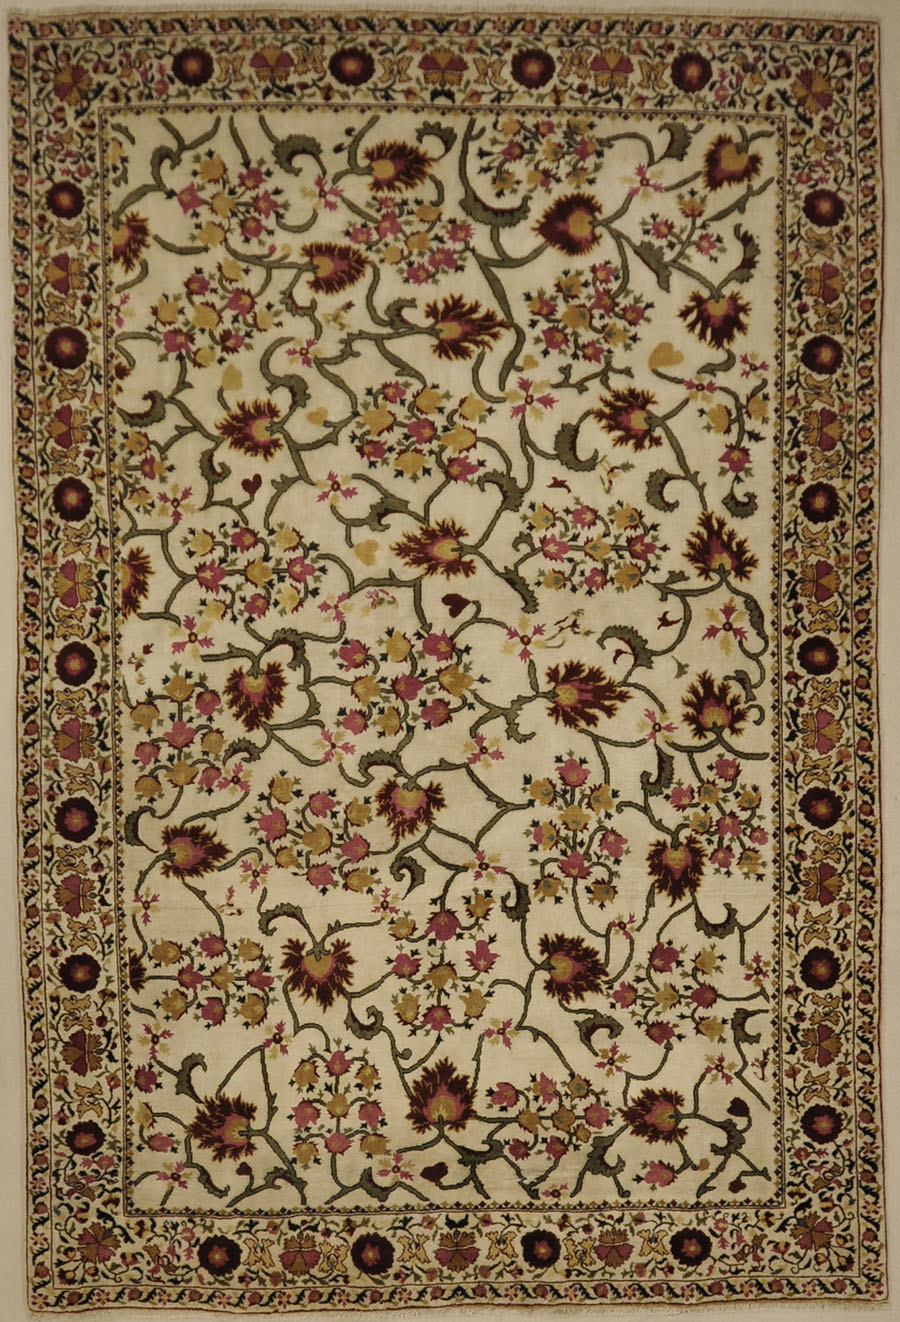 Finest Suzani Design Rug rugs and more oriental carpet 28182-